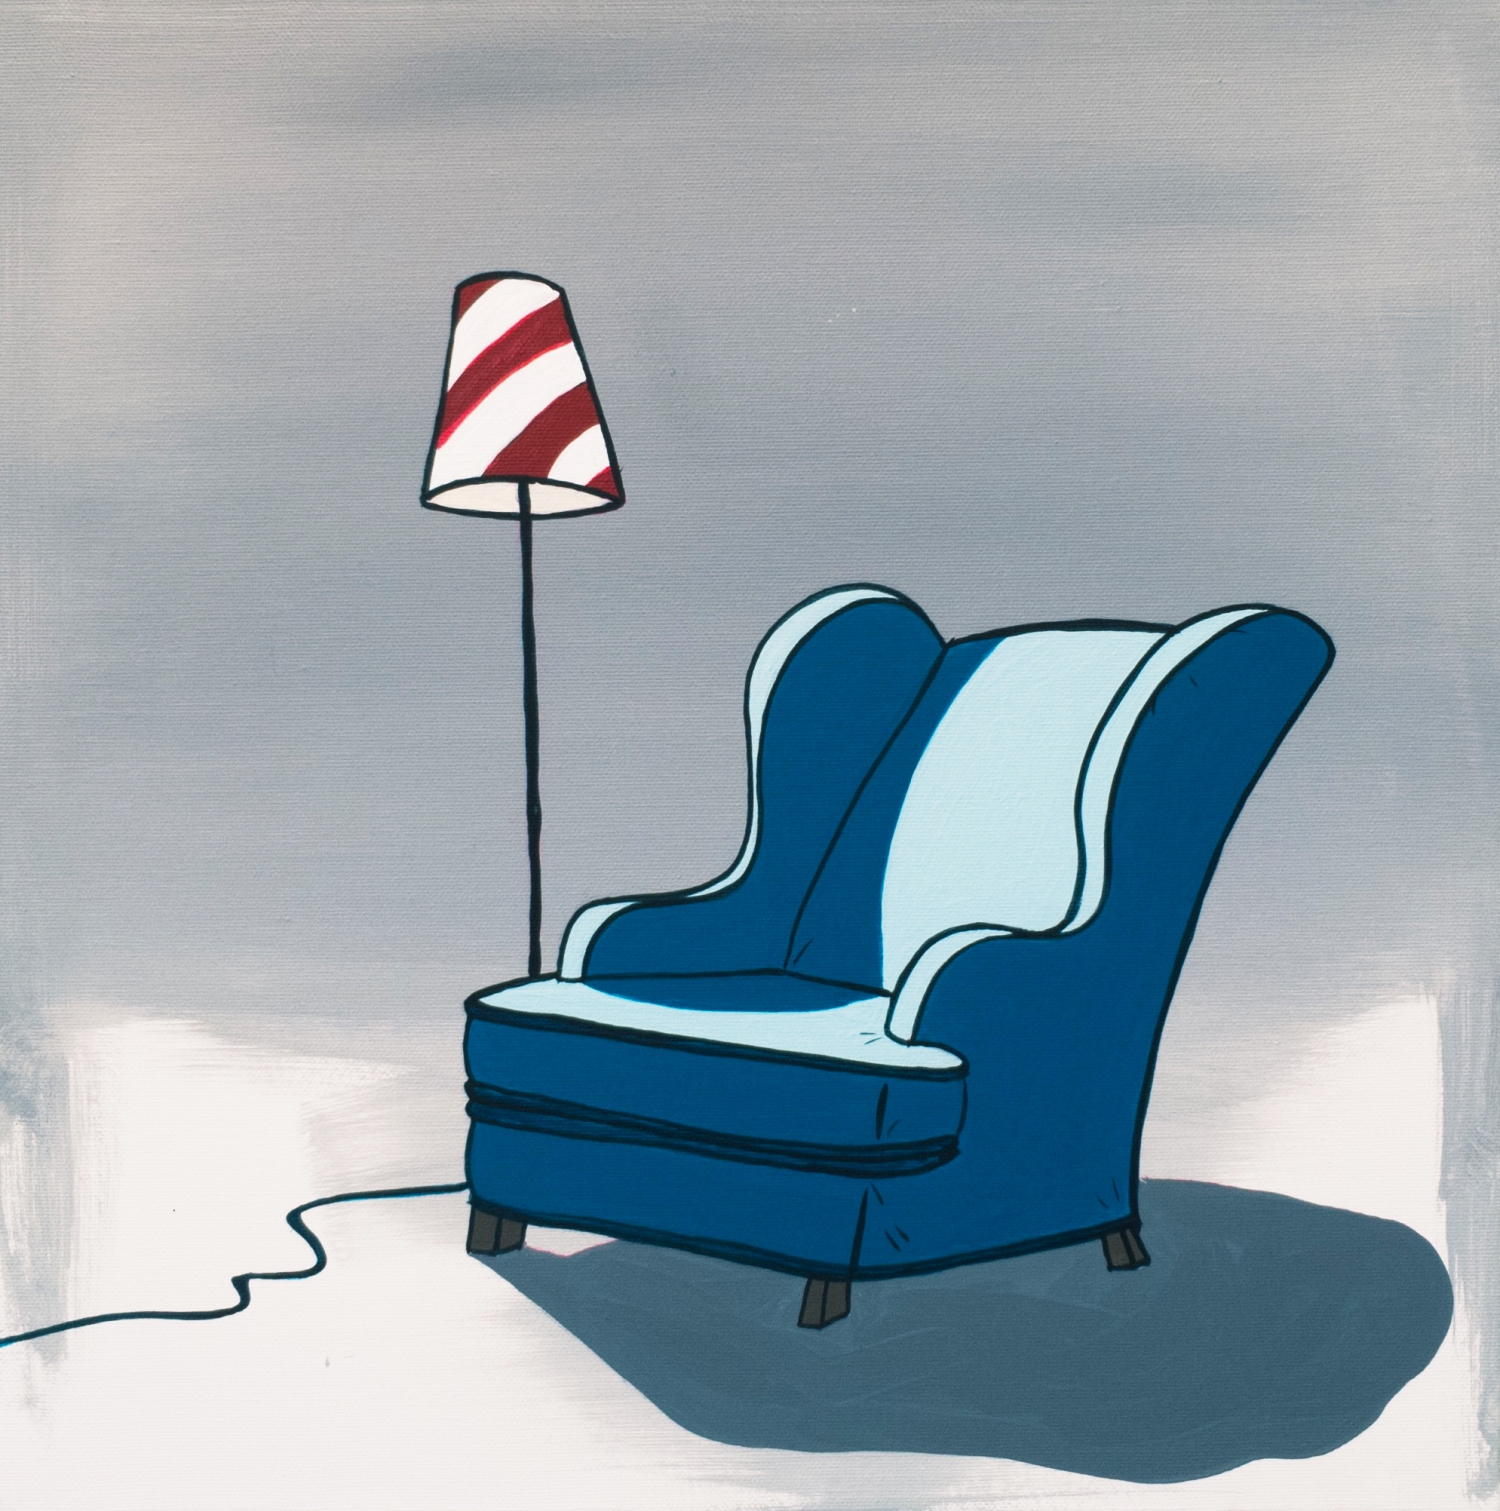 Lamp & a couch